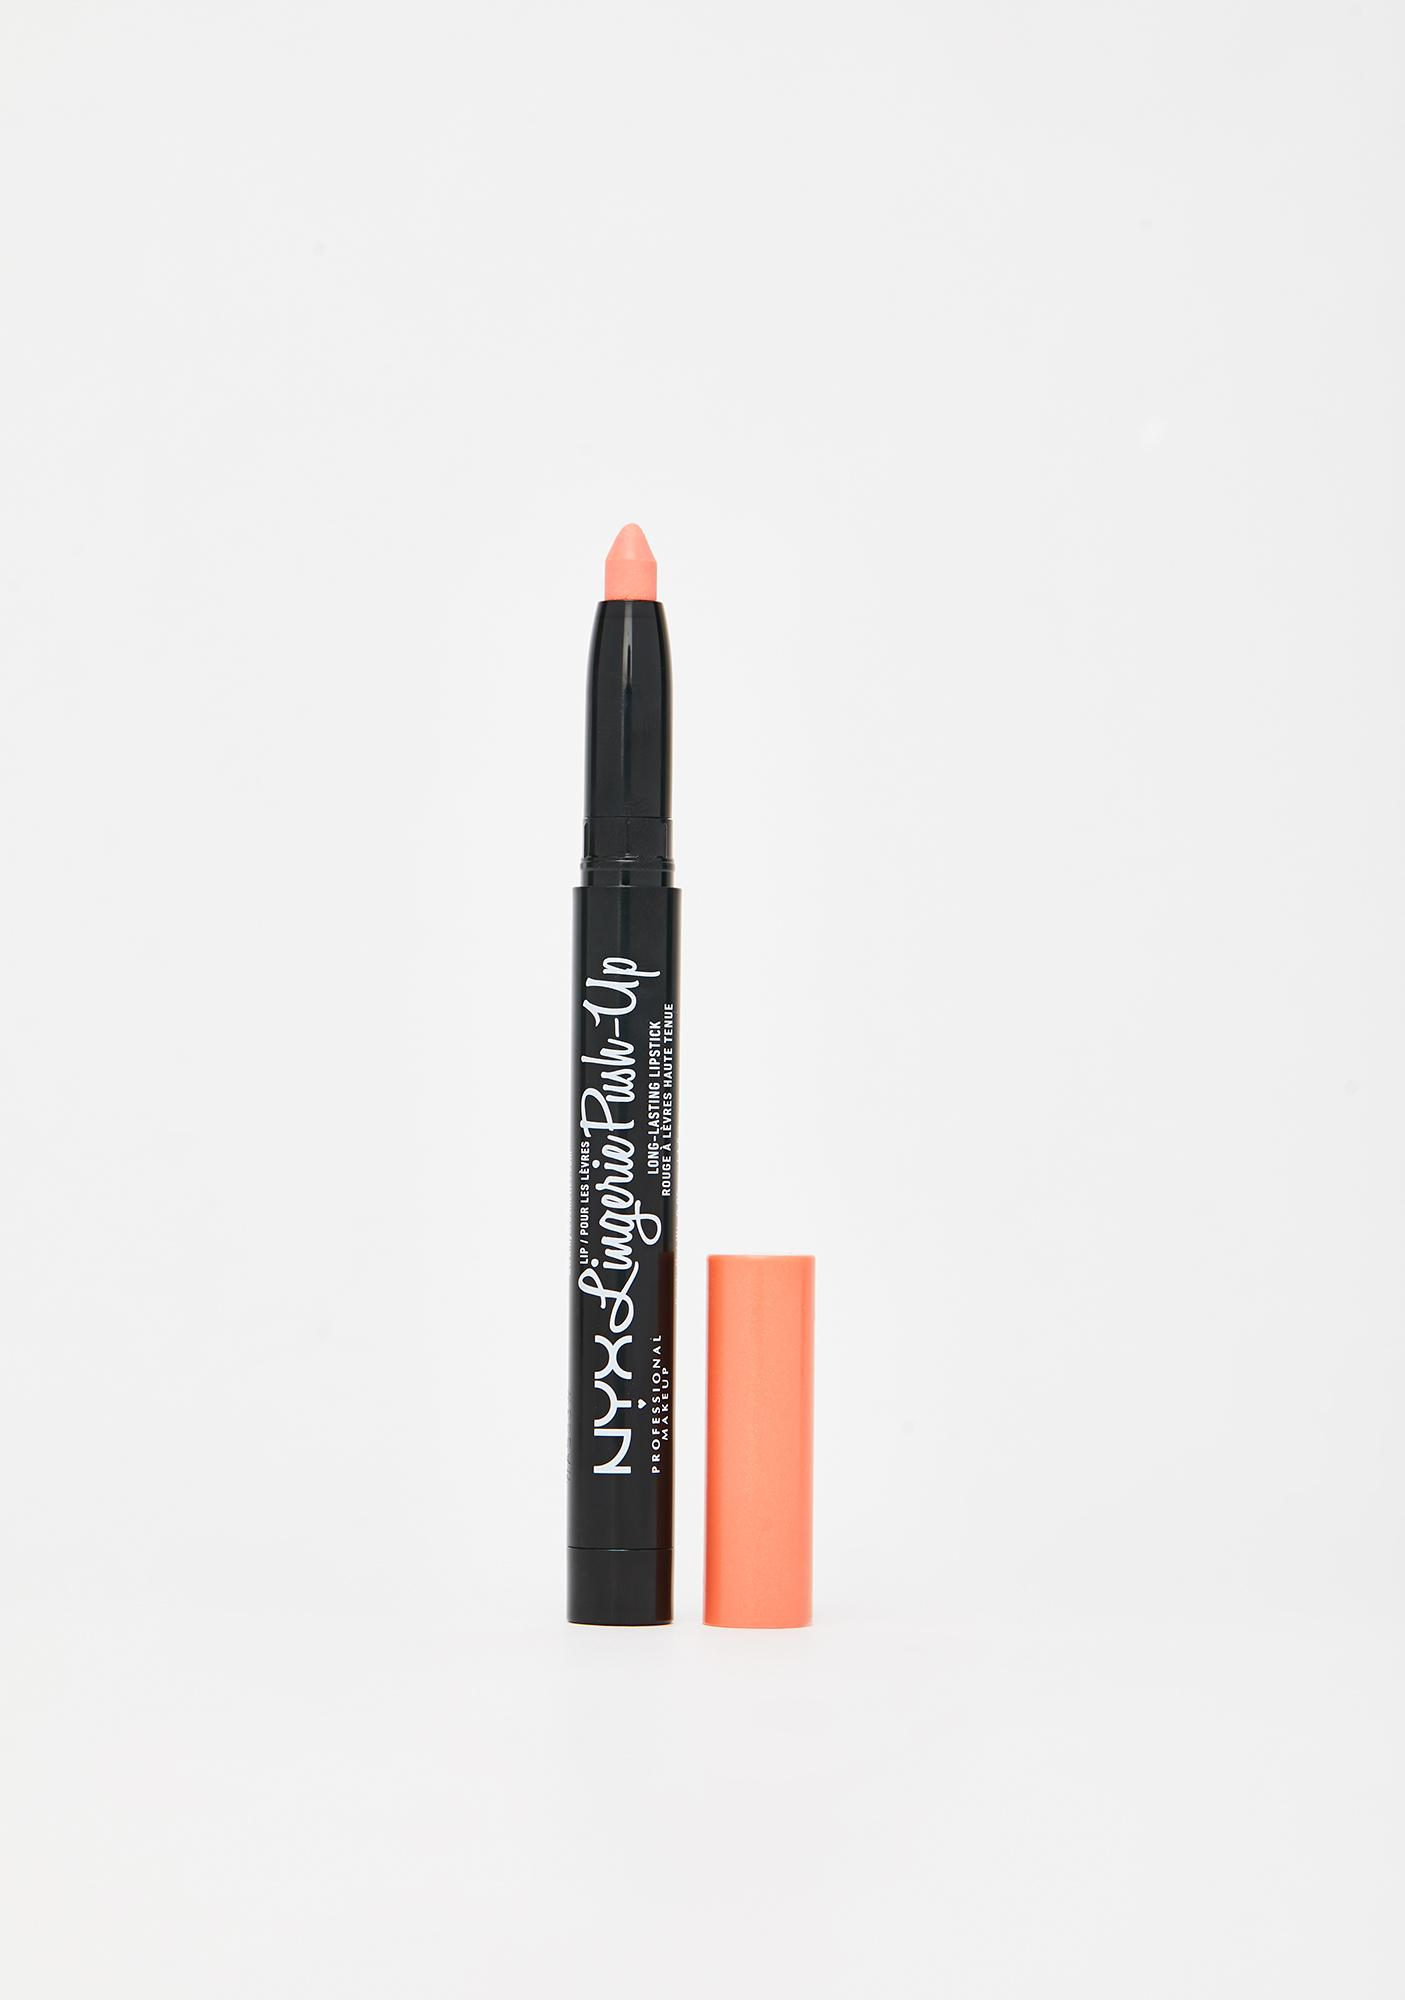 NYX Professional Makeup Baby Pink Lip Lingerie Lipstick